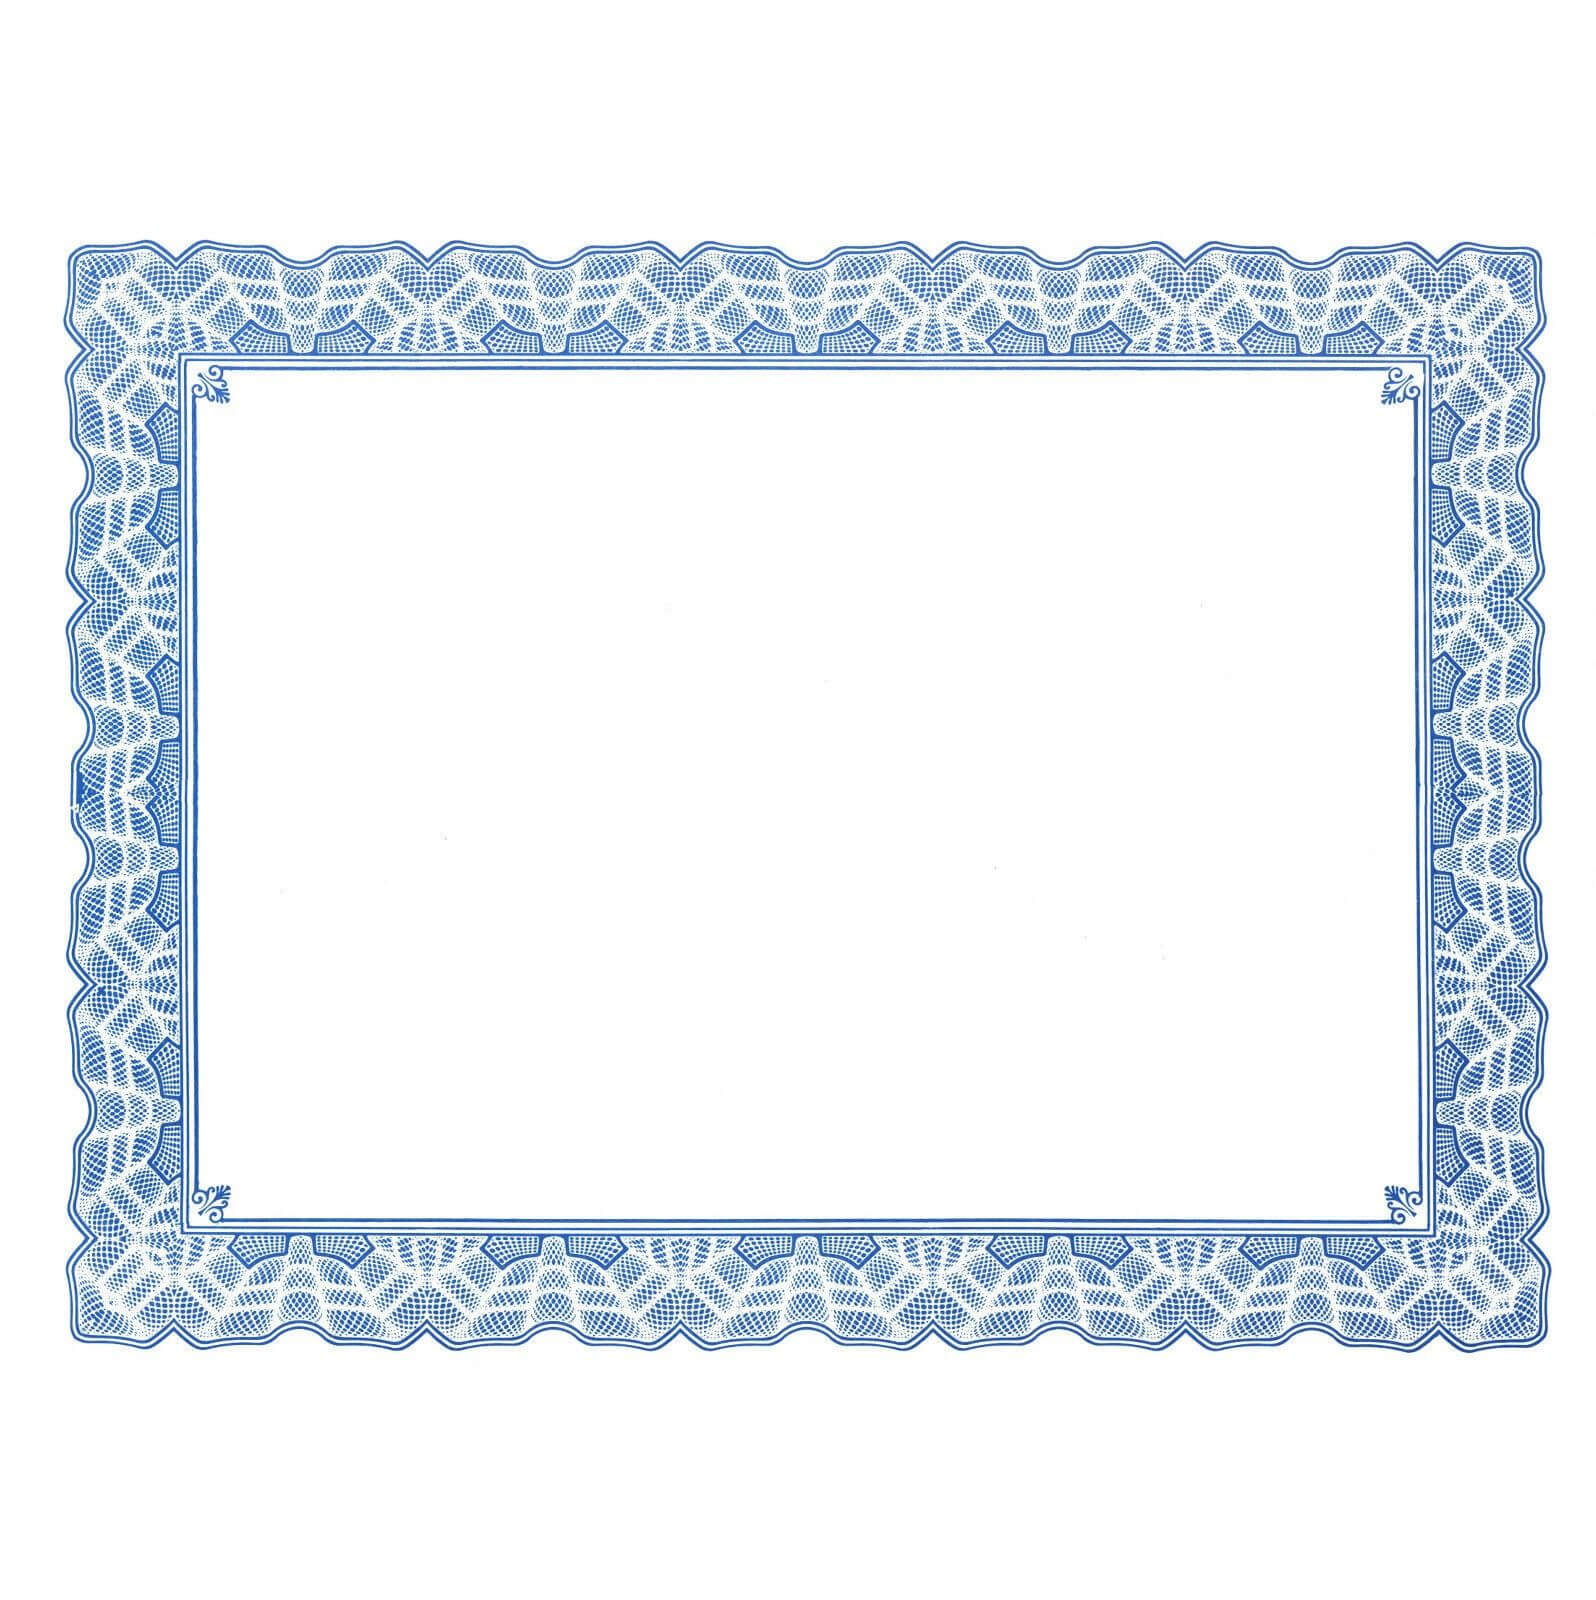 Free Certificate Border Templates For Word with regard to Free Certificate Templates For Word 2007